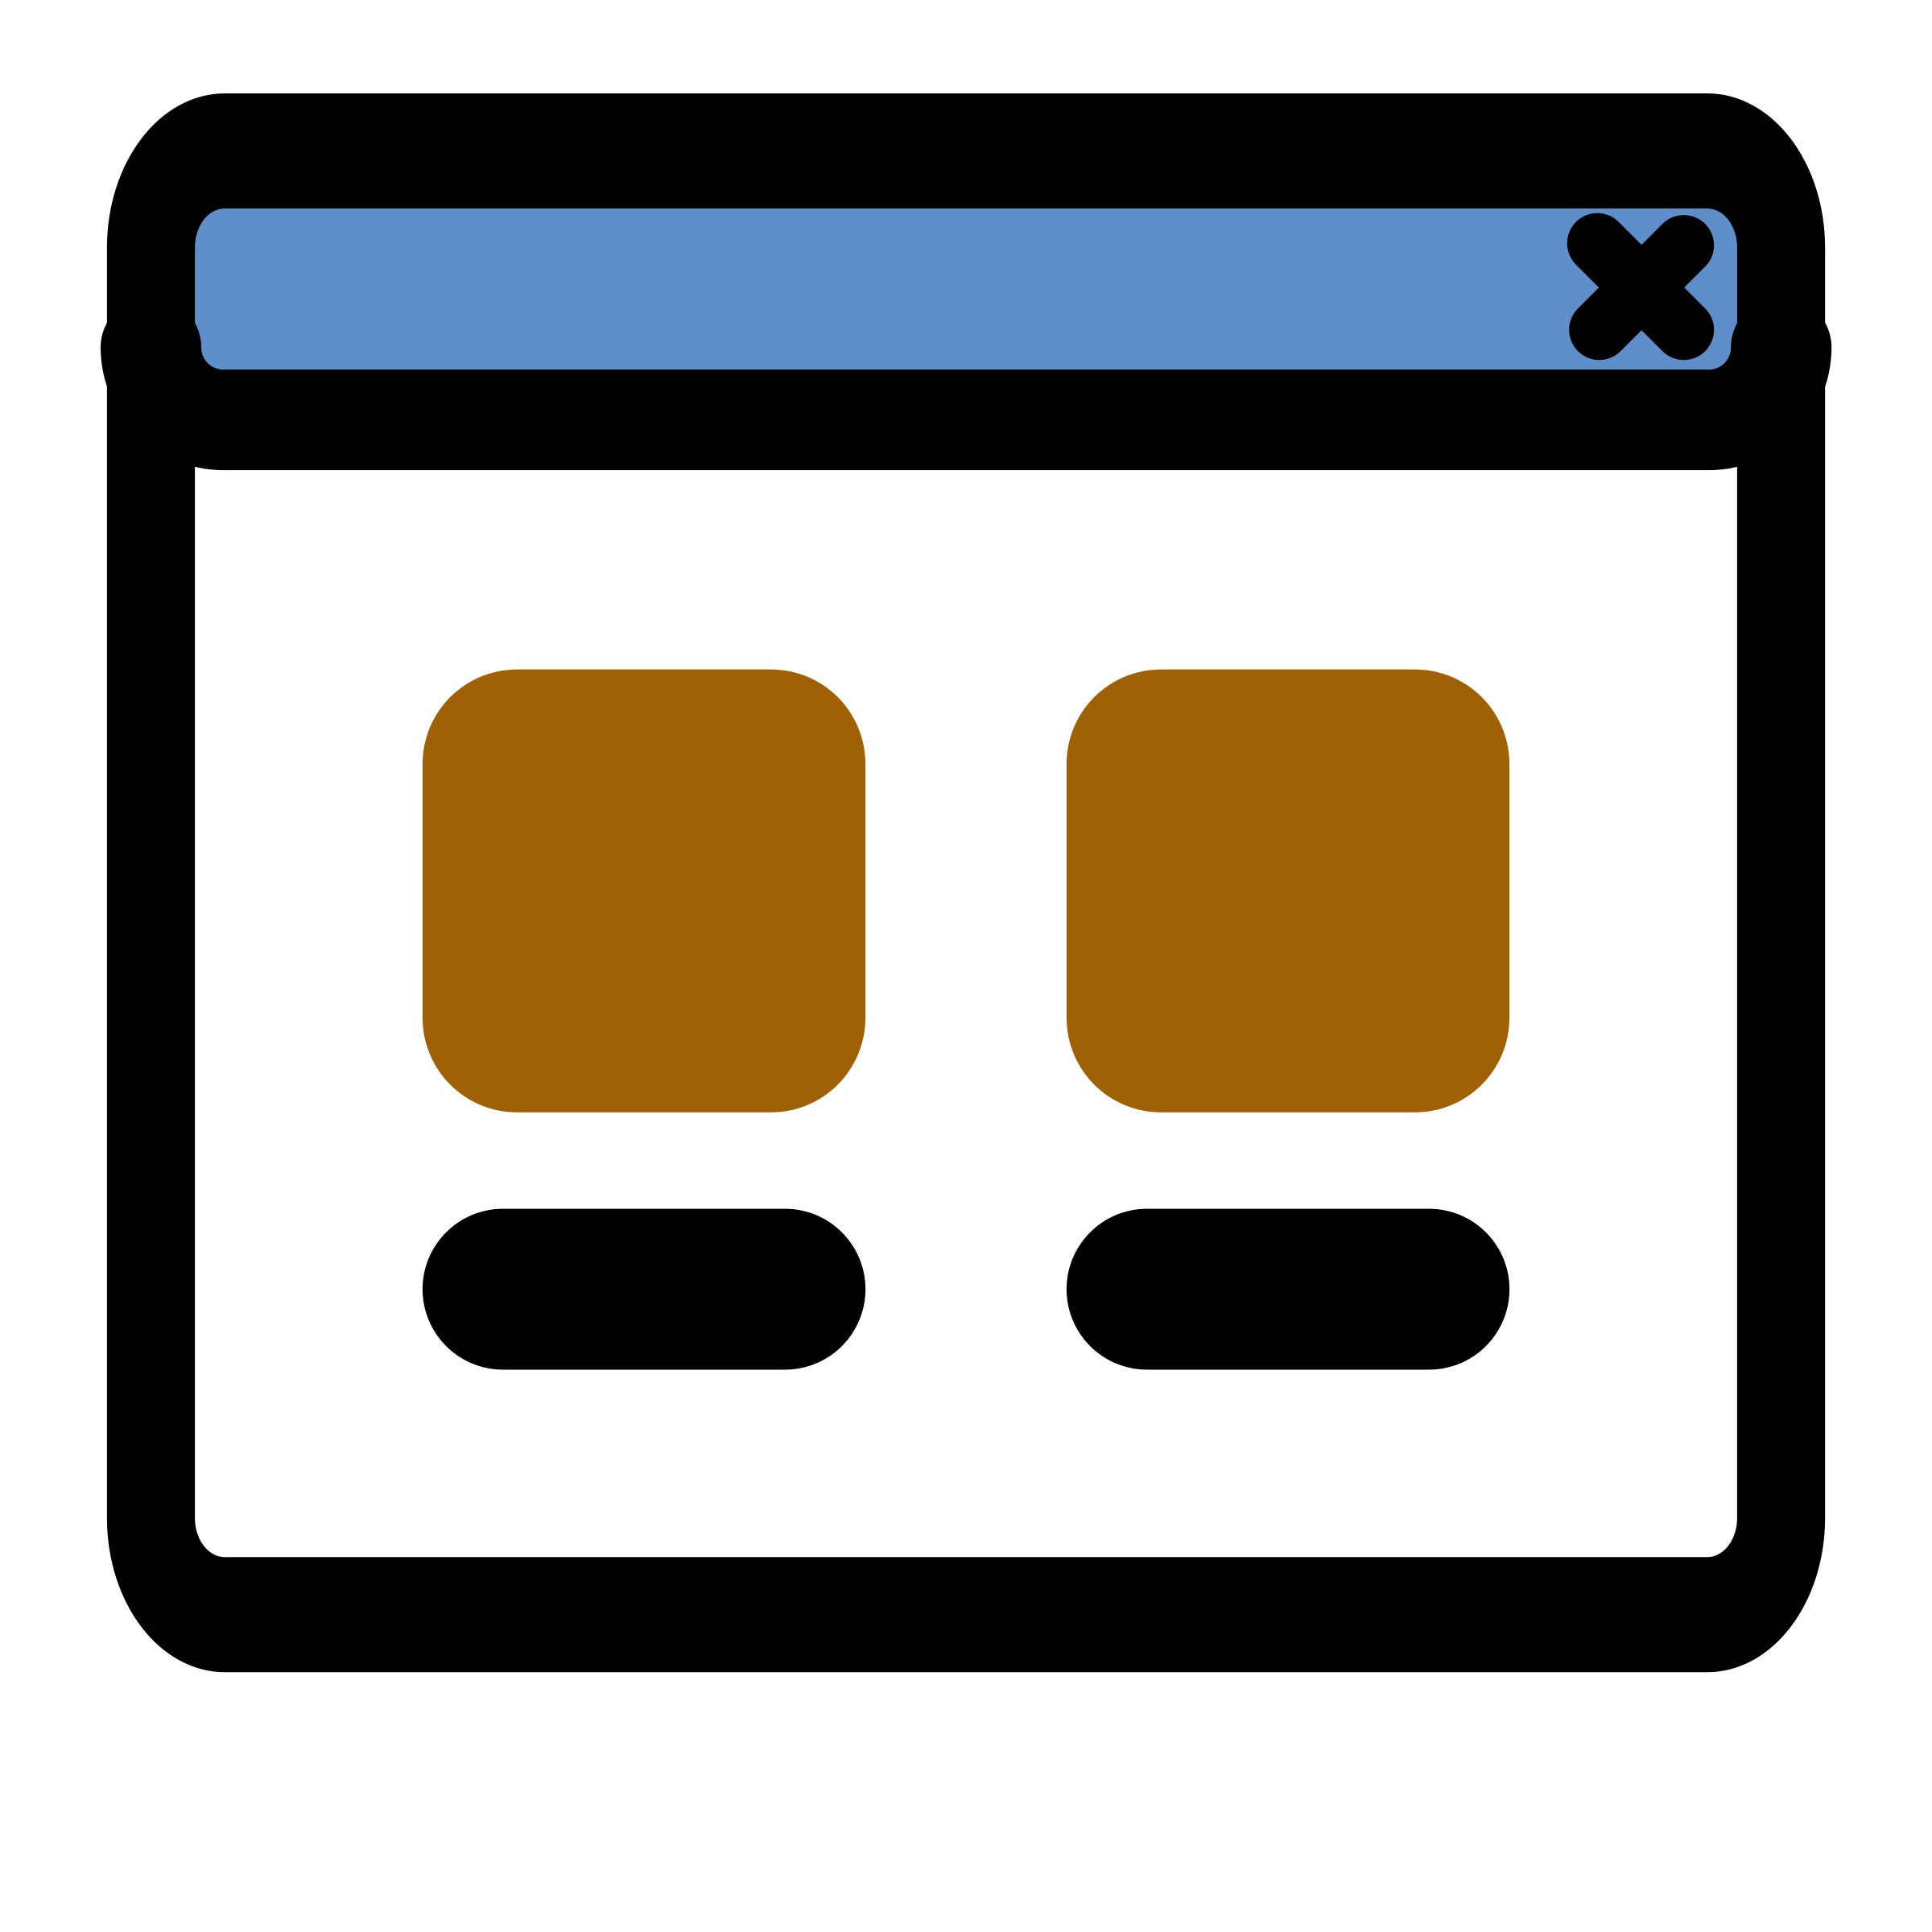 primary view icon by dannya